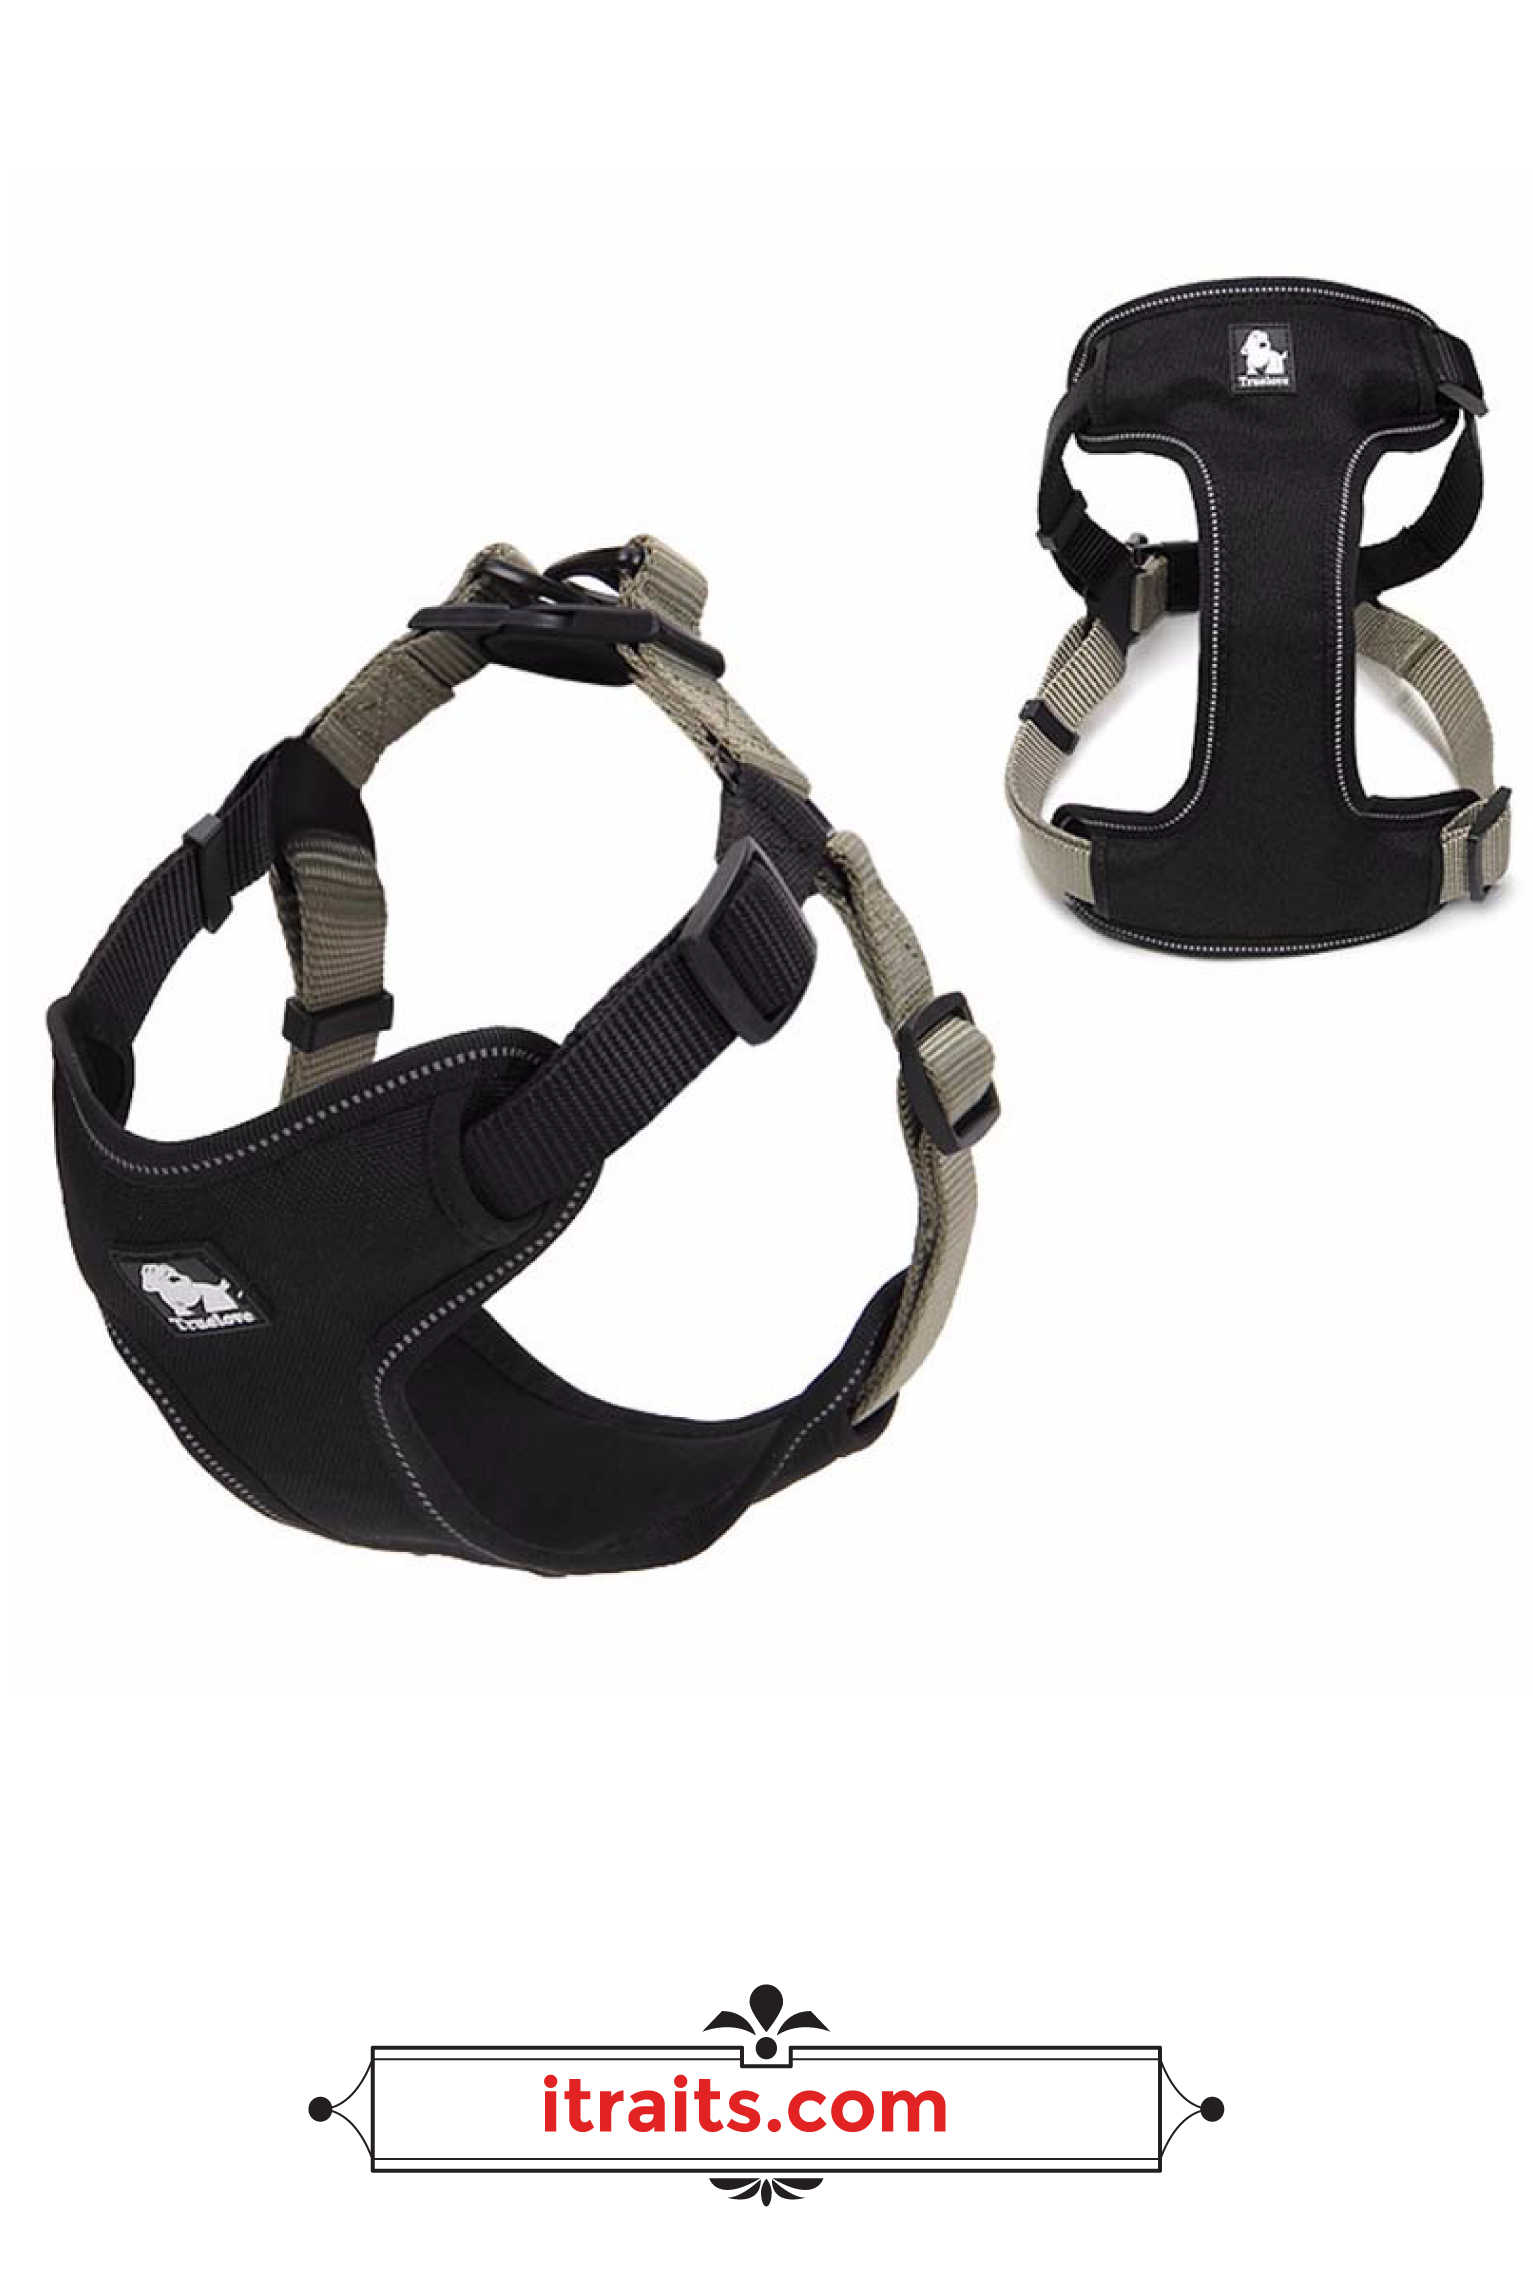 Dog Harness NoPull, Adjustable, Soft Padded with